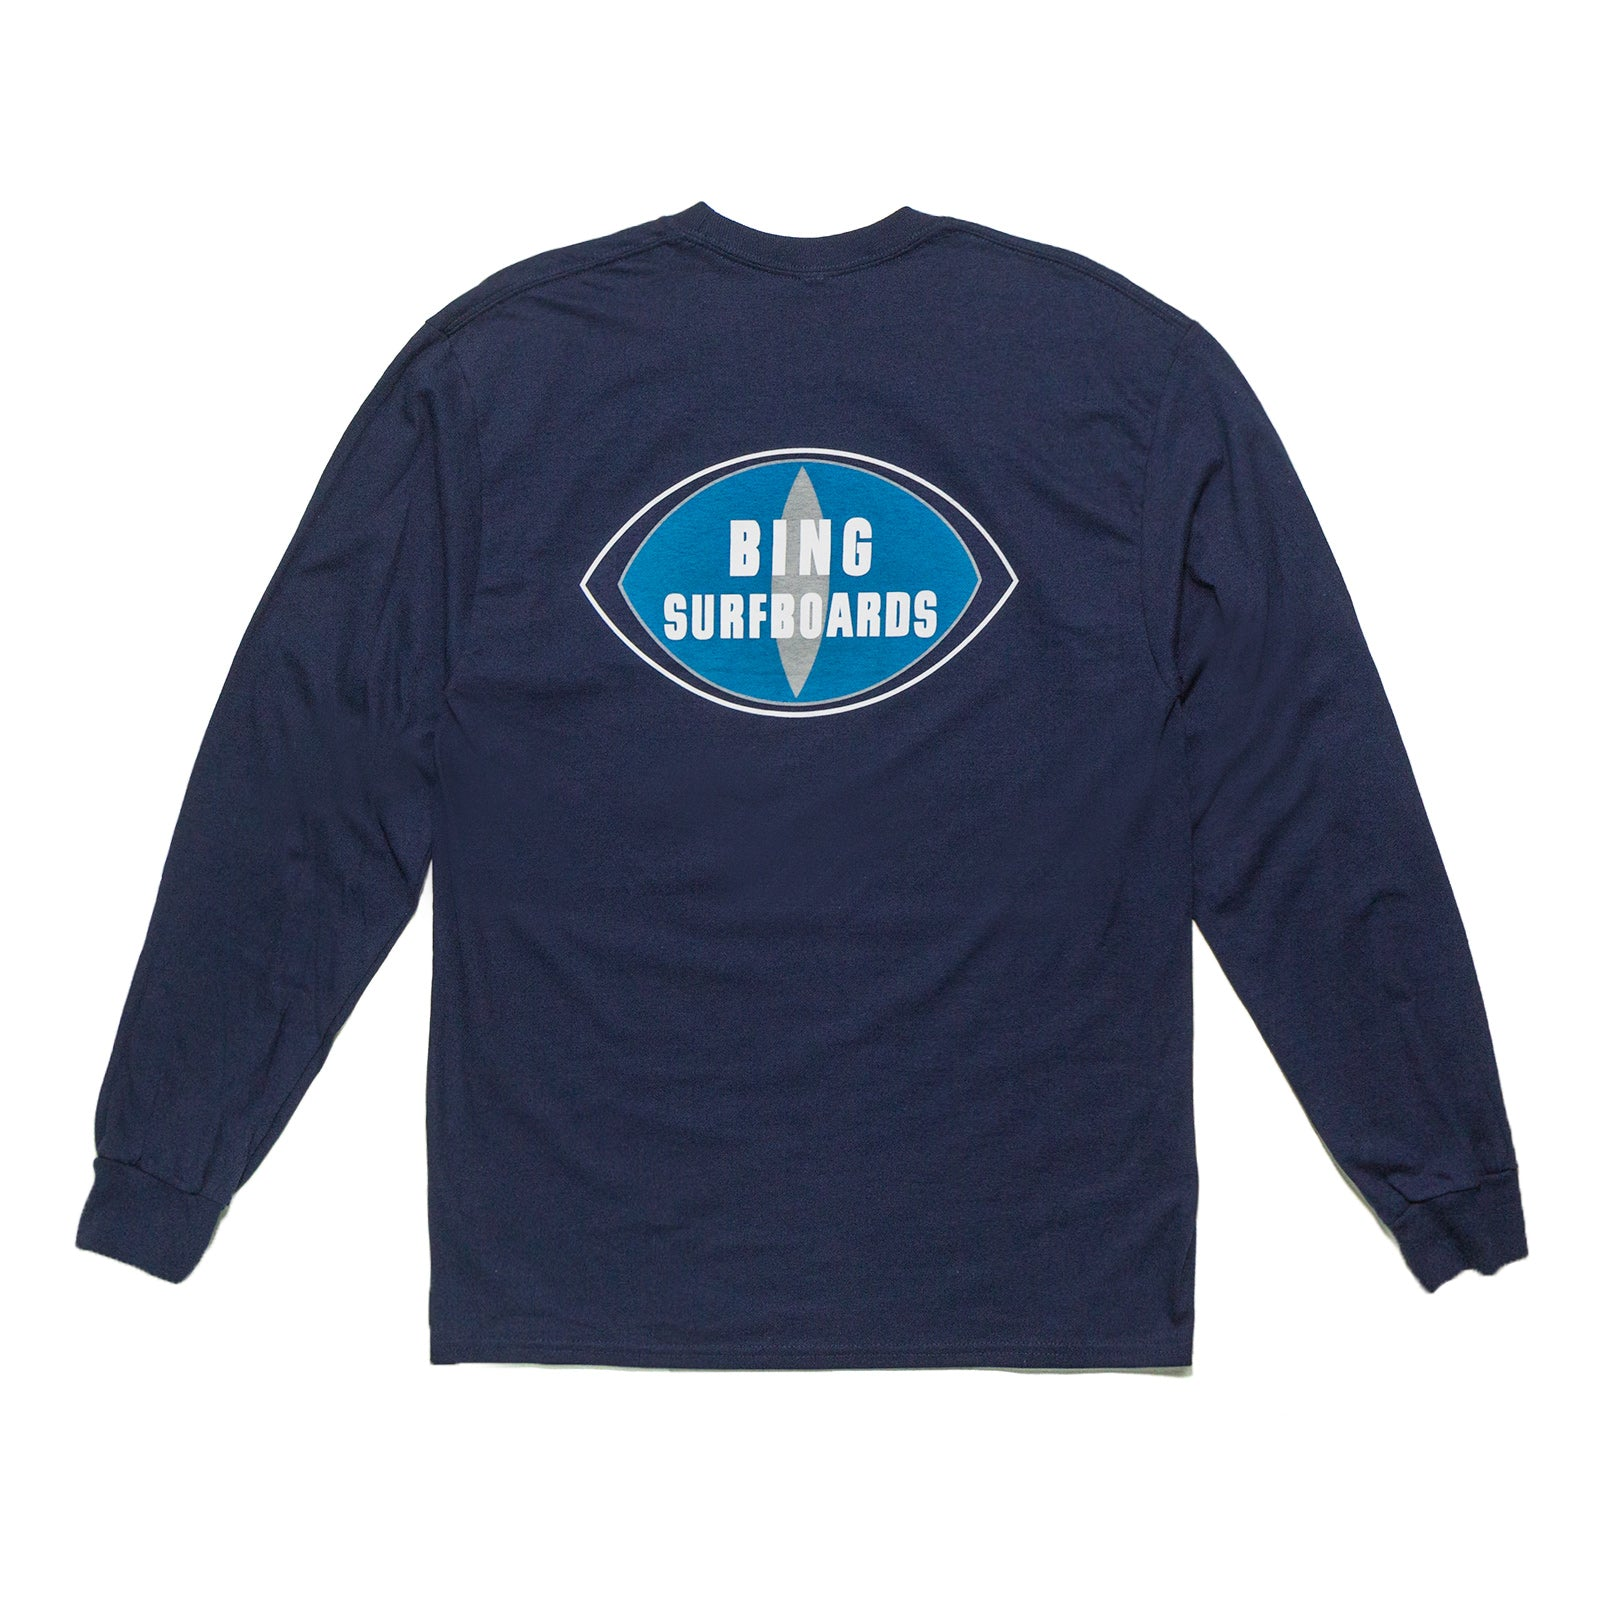 ORIGINAL CLASSIC LONG SLEEVE TEE NAVY